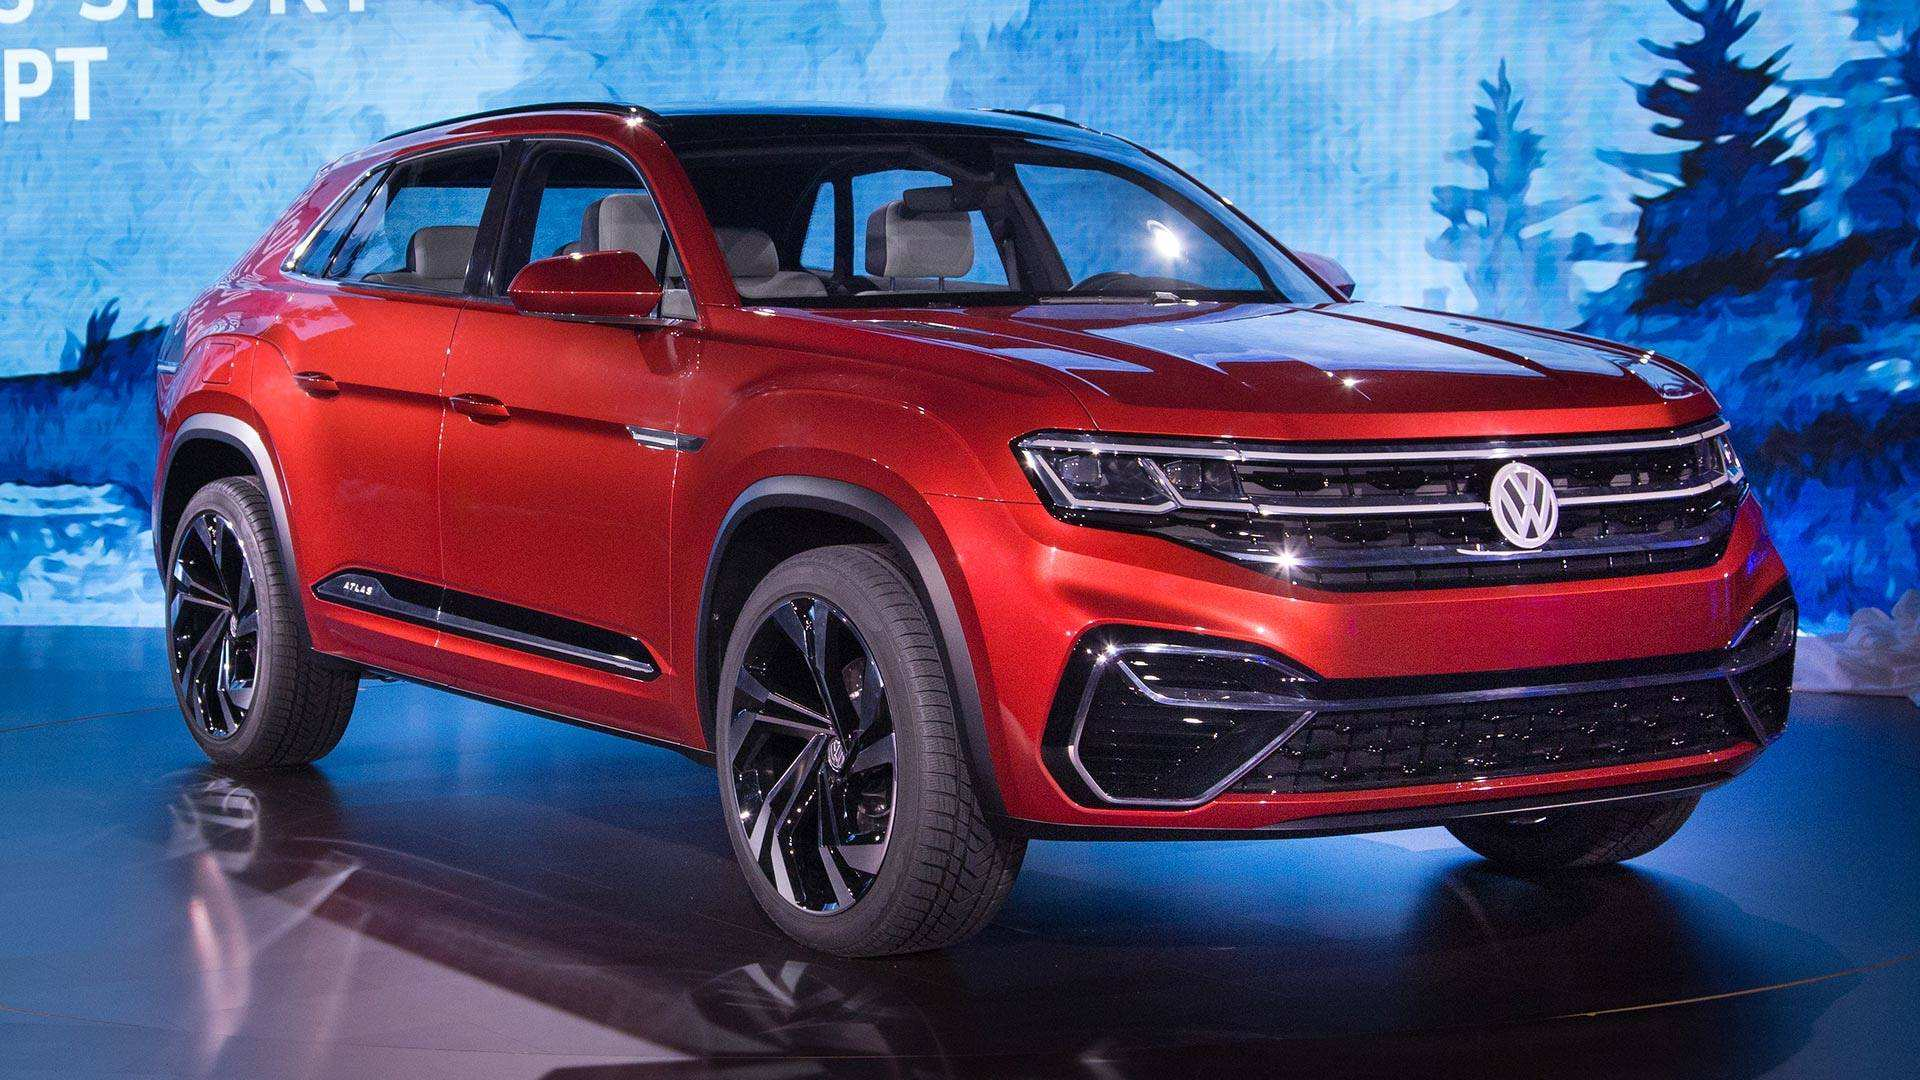 33 All New Volkswagen Atlas 2020 Price Photos for Volkswagen Atlas 2020 Price